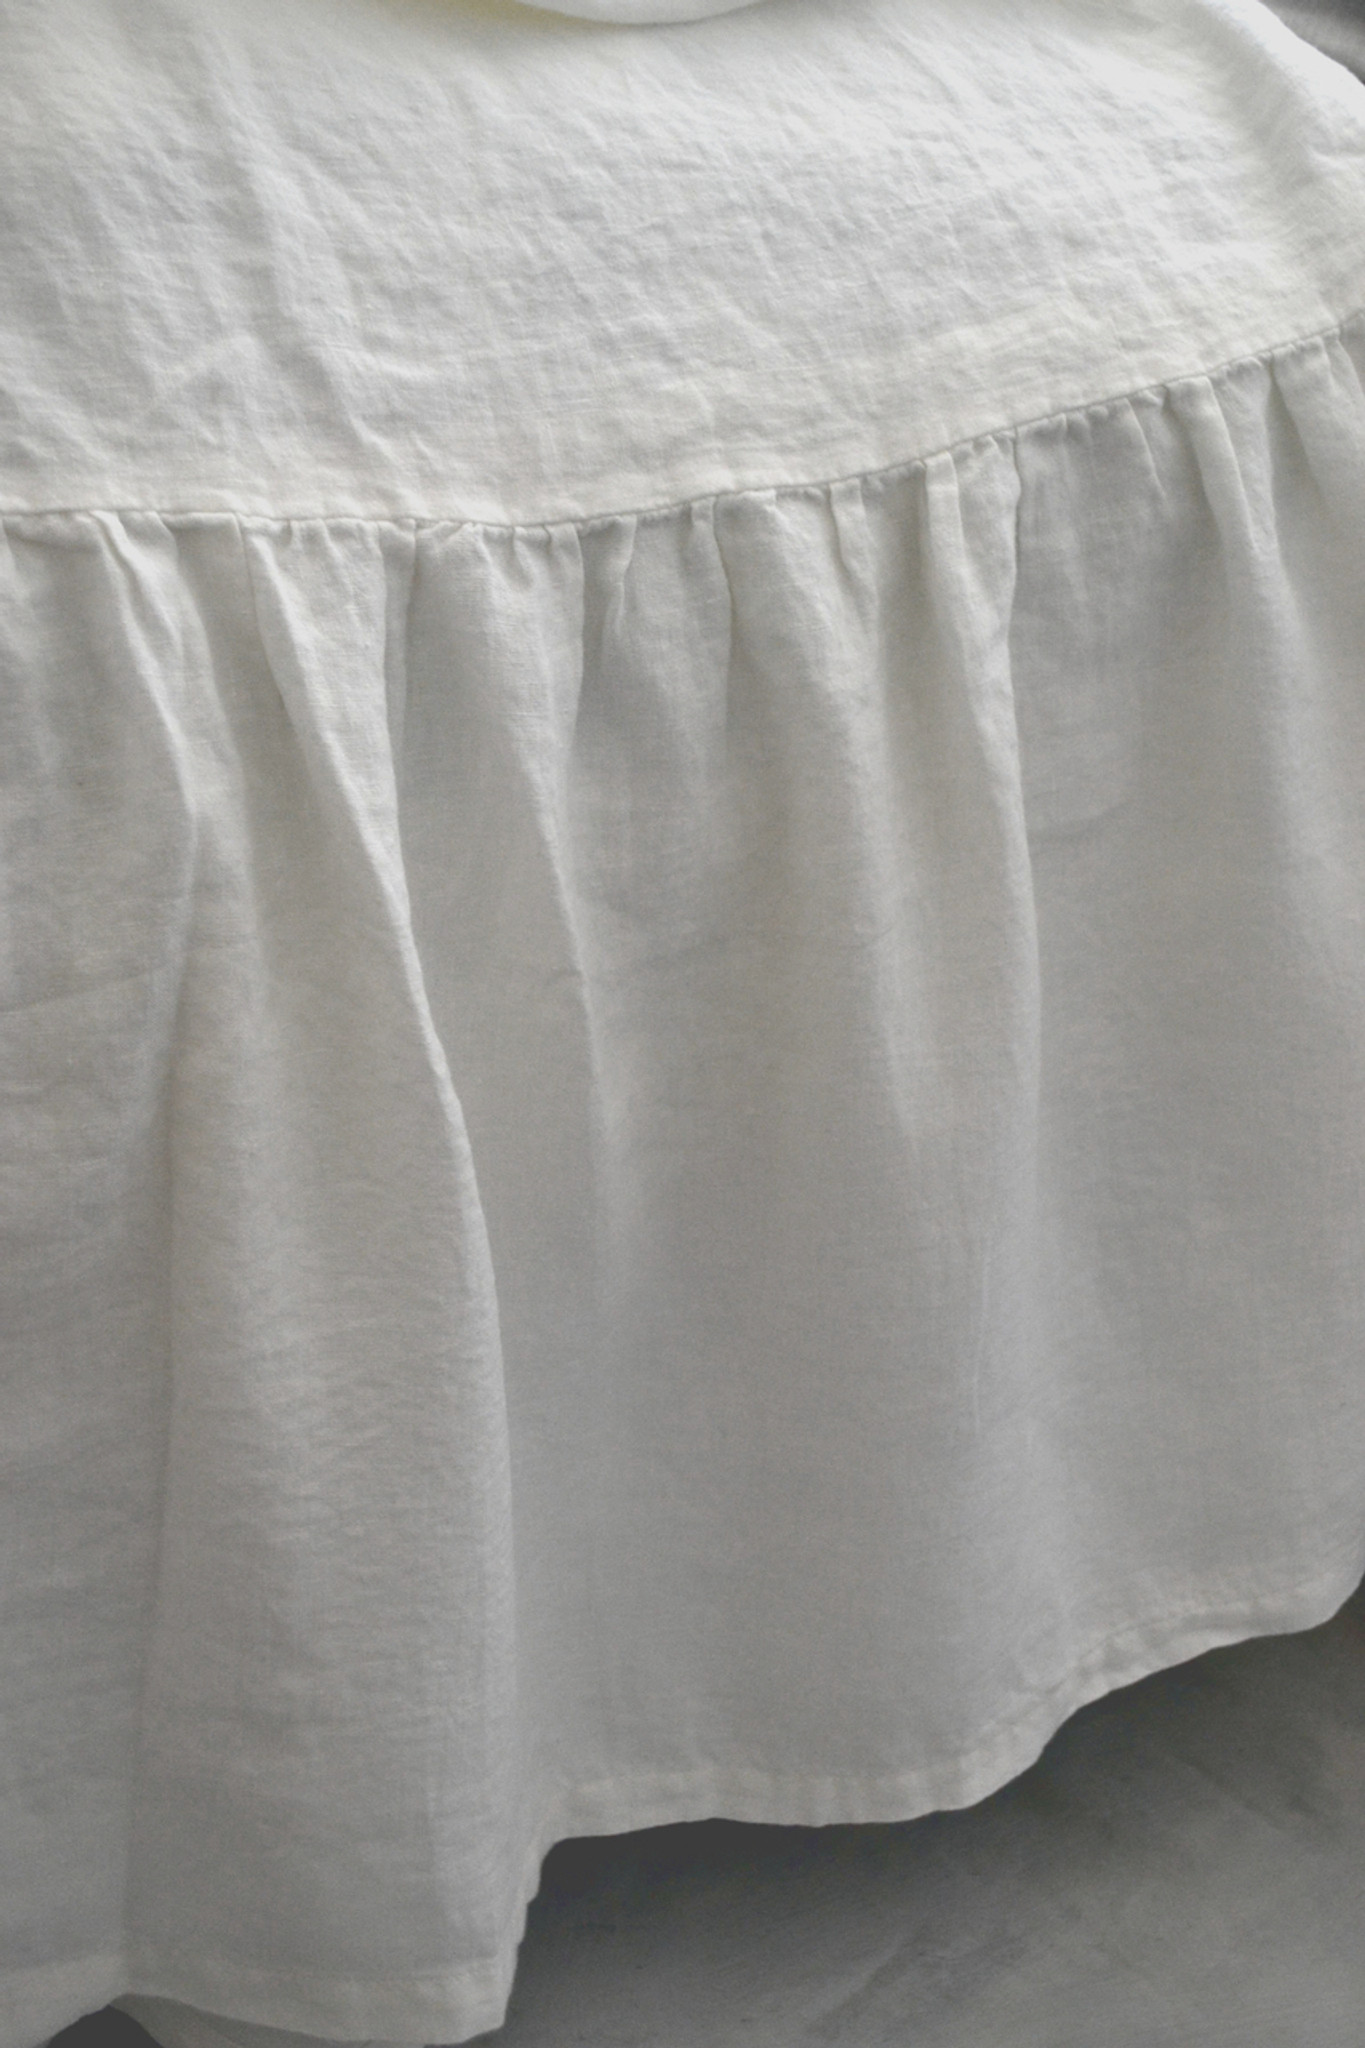 White Ruffled Linen Bed Skirt Dust Ruffle Valance